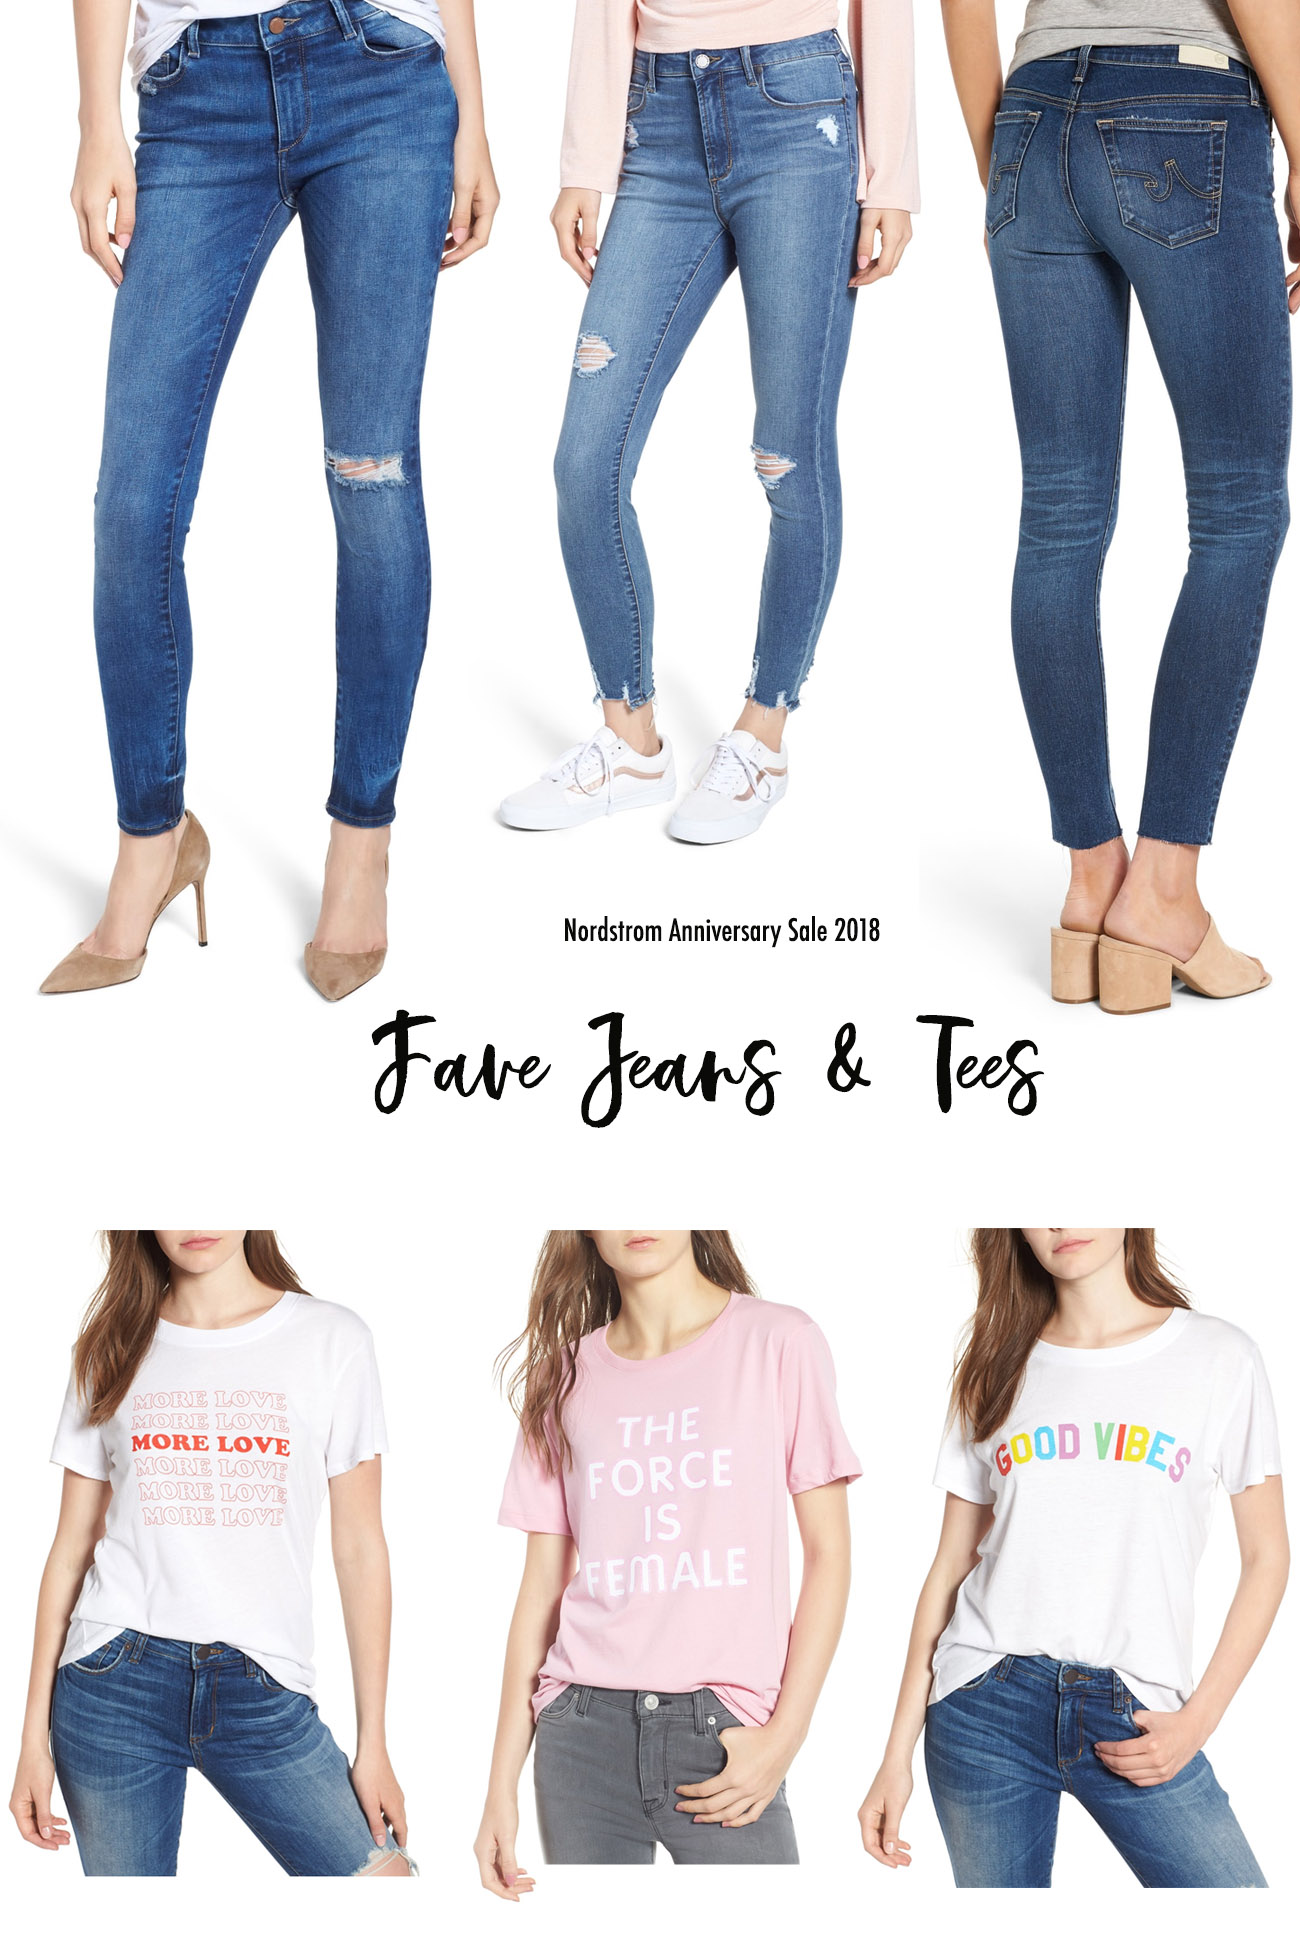 nordstrom sale 2018 fave jeans and tees